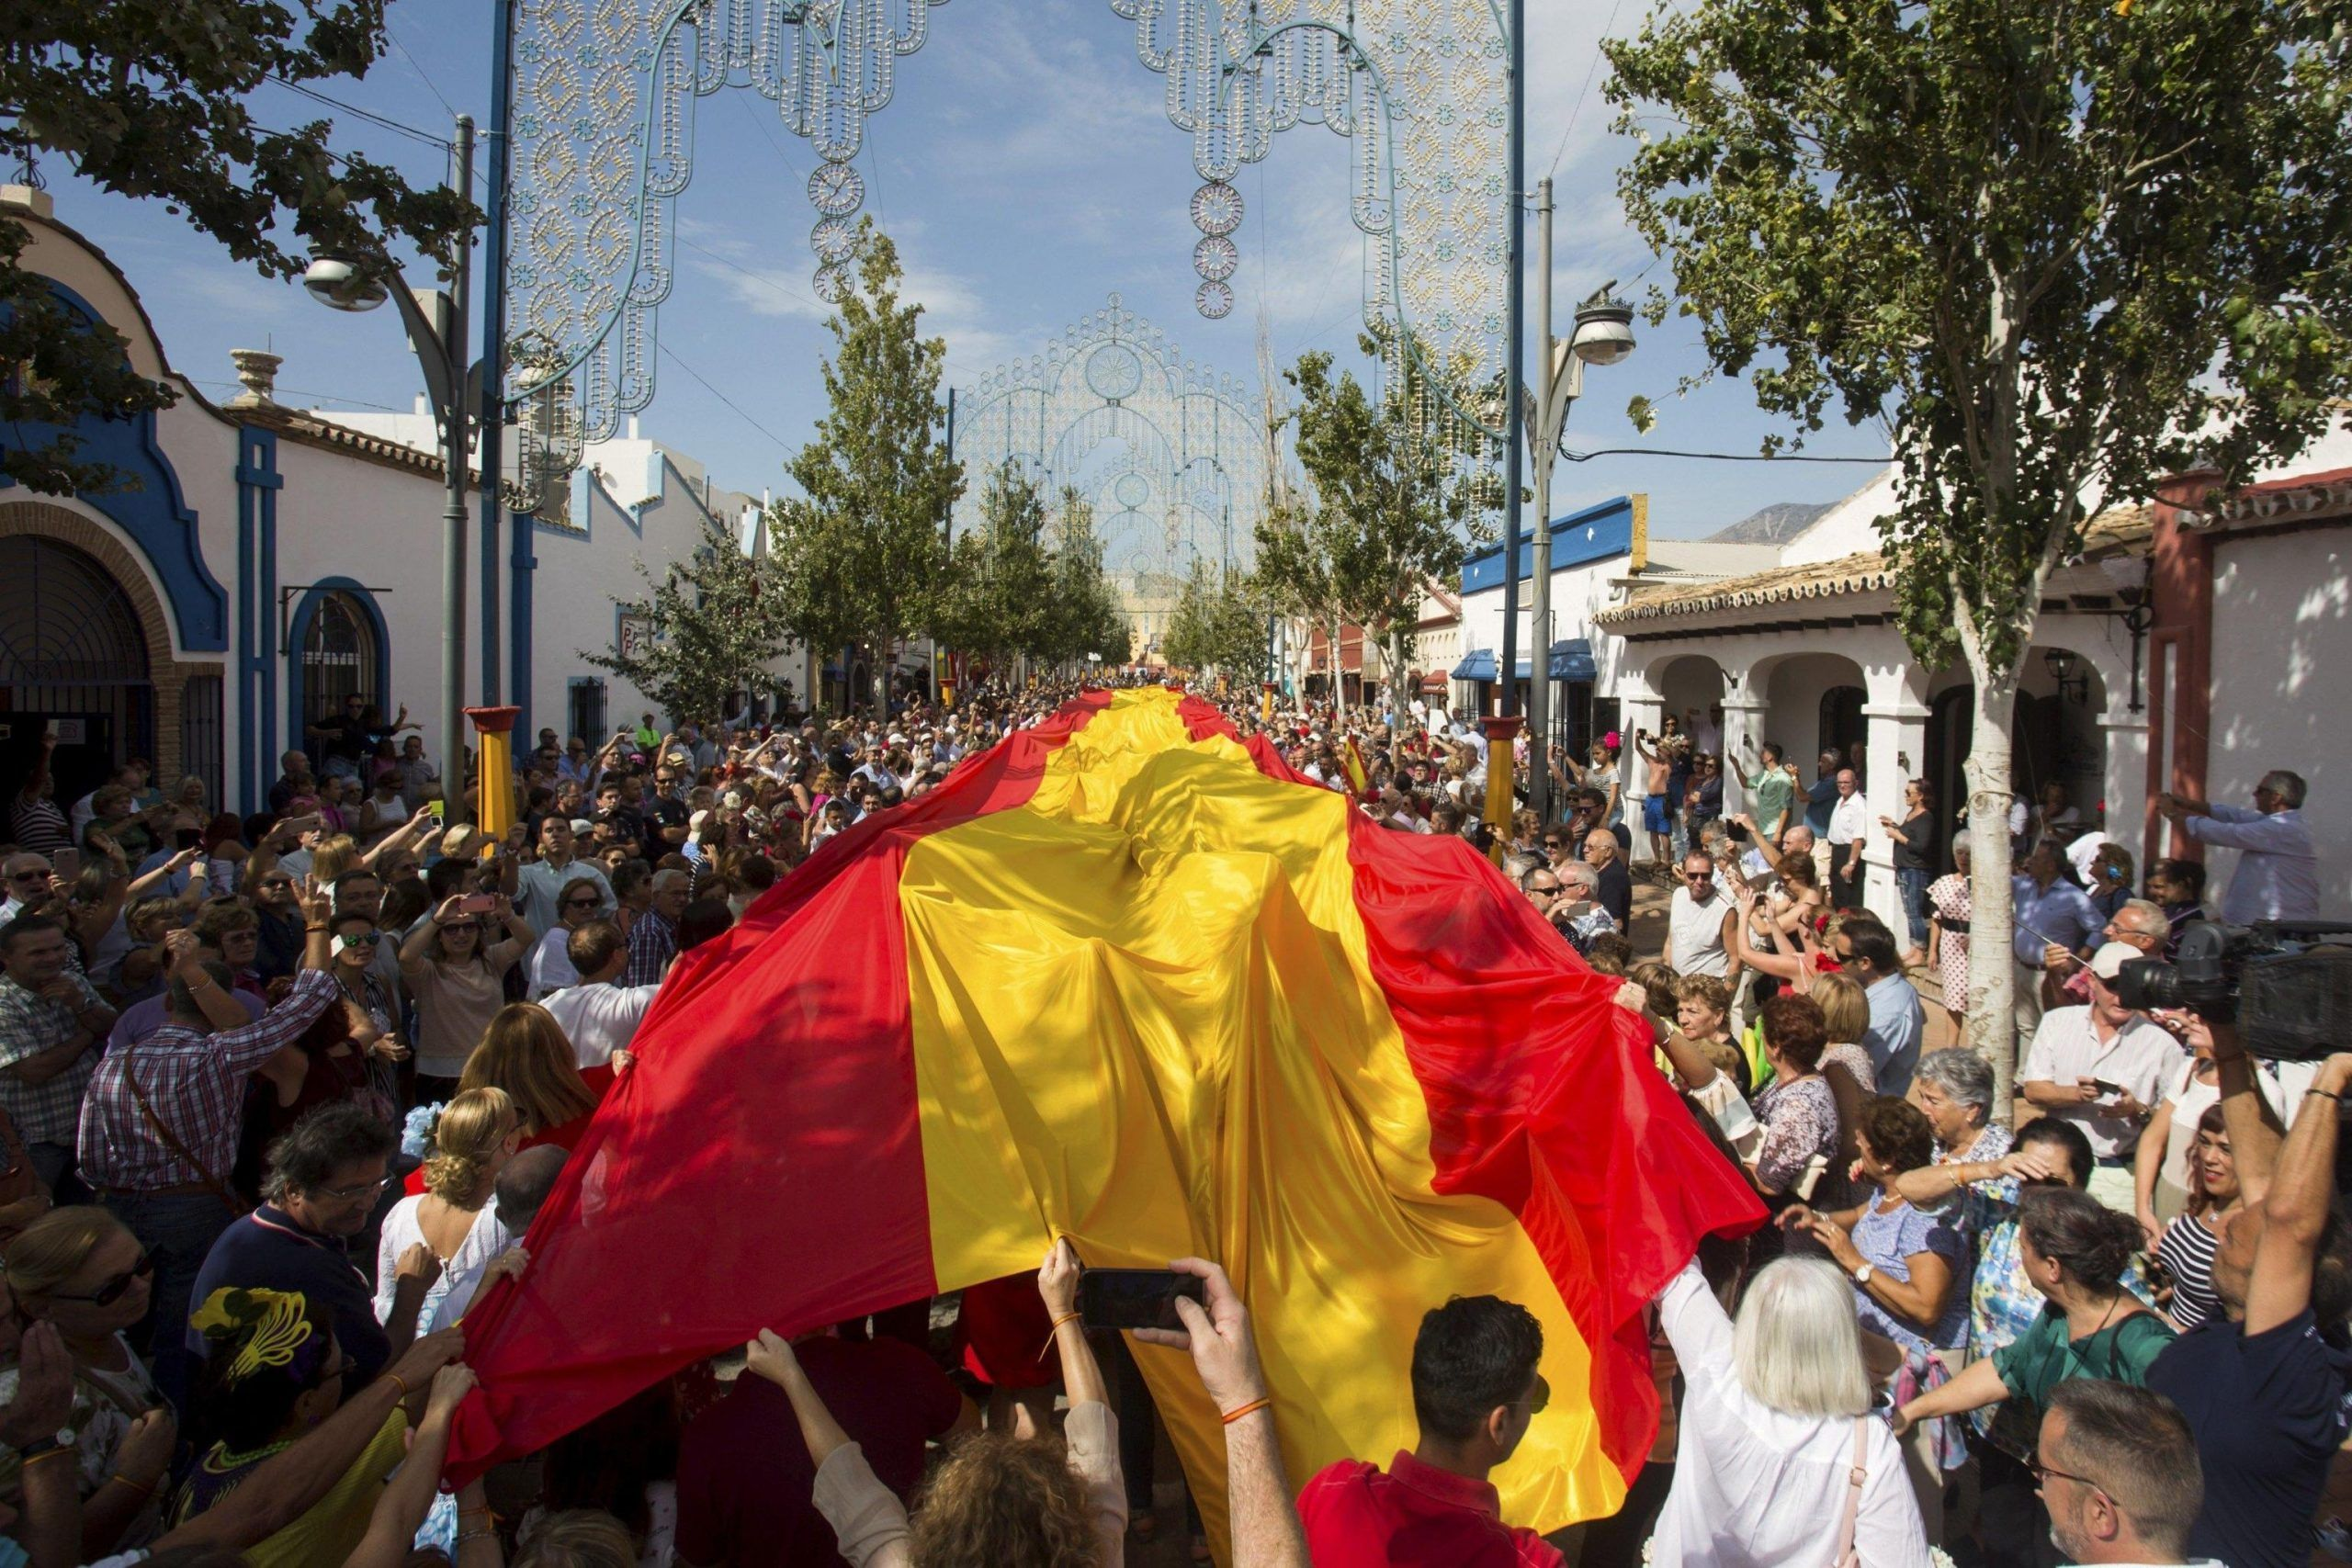 Spain's National Day celebration in Malaga